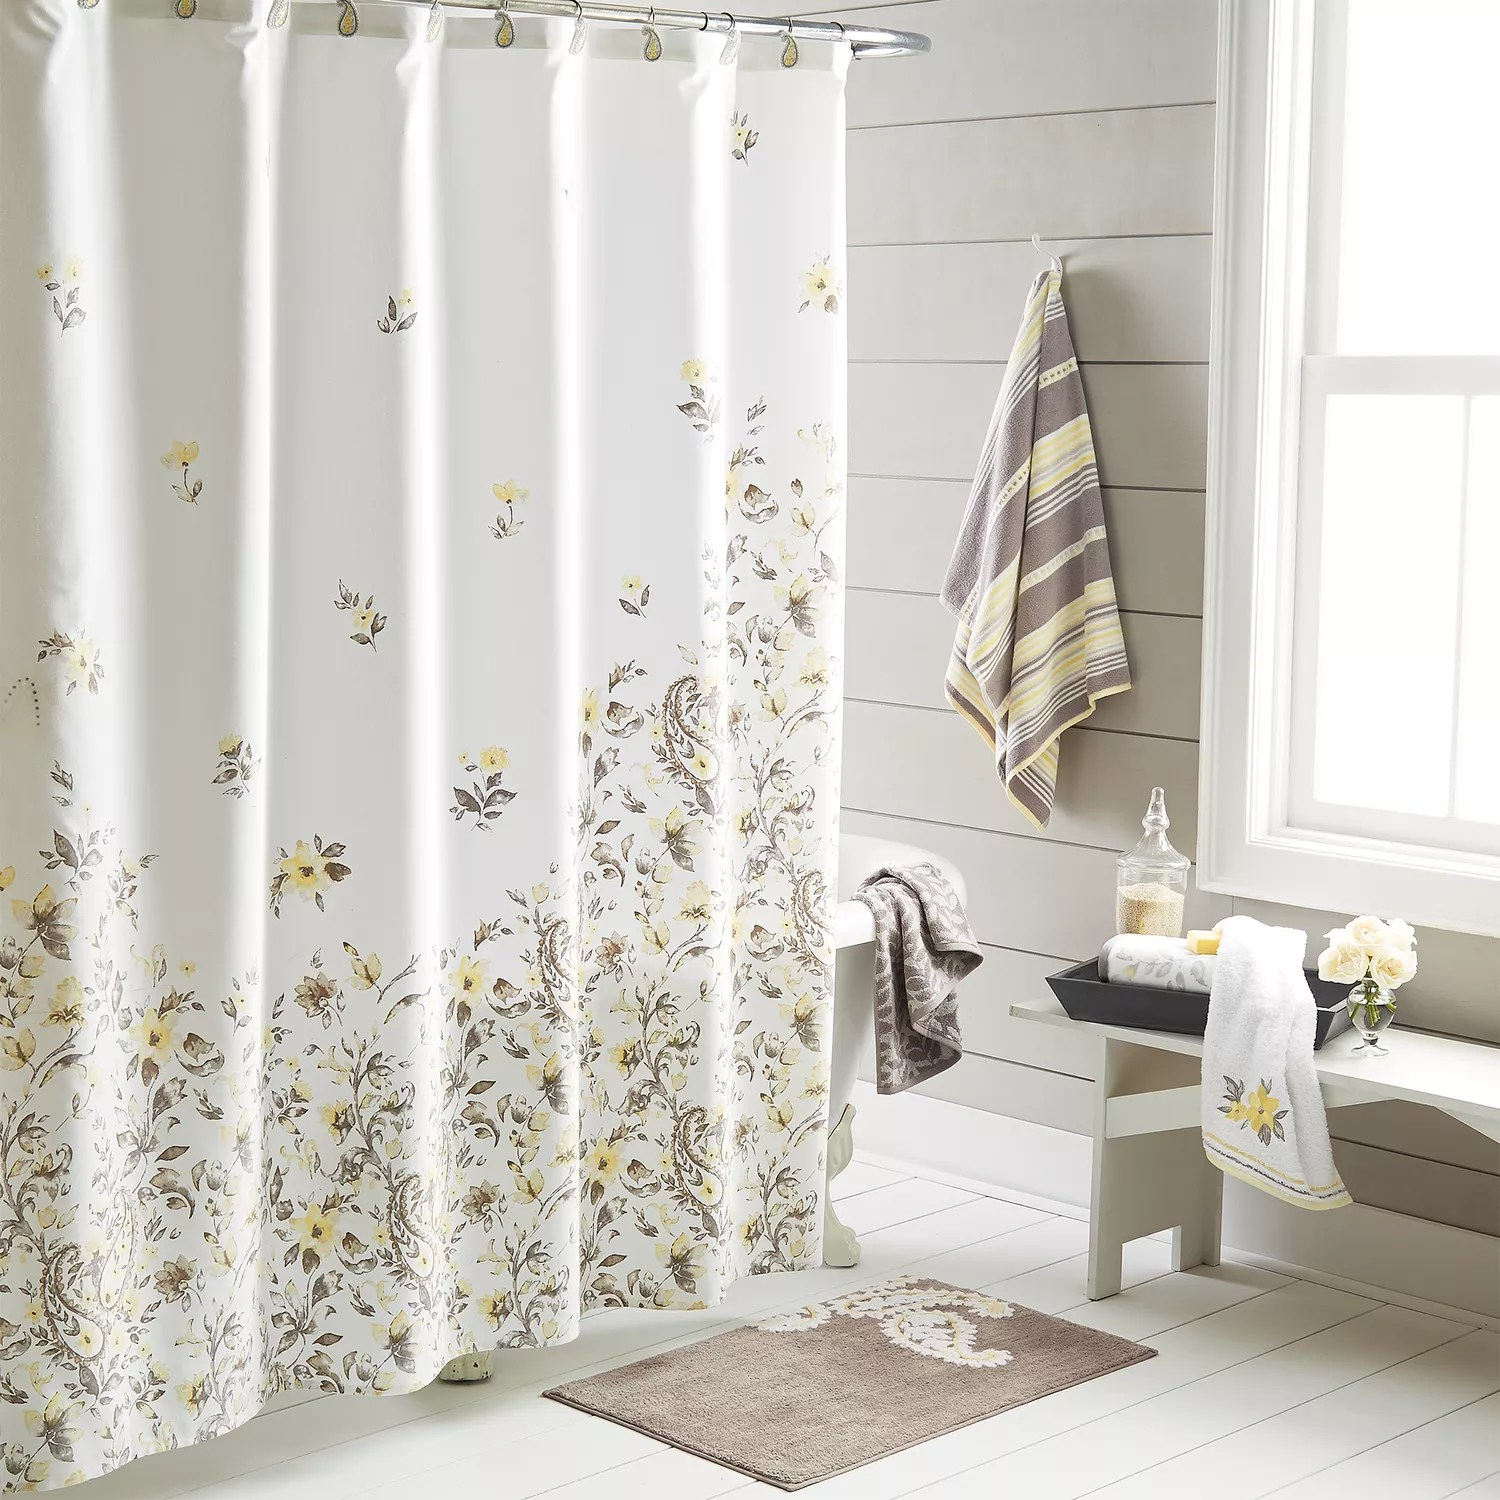 Kohls Com Shower Curtains One Home Taylor Floral Shower Curtain Collection